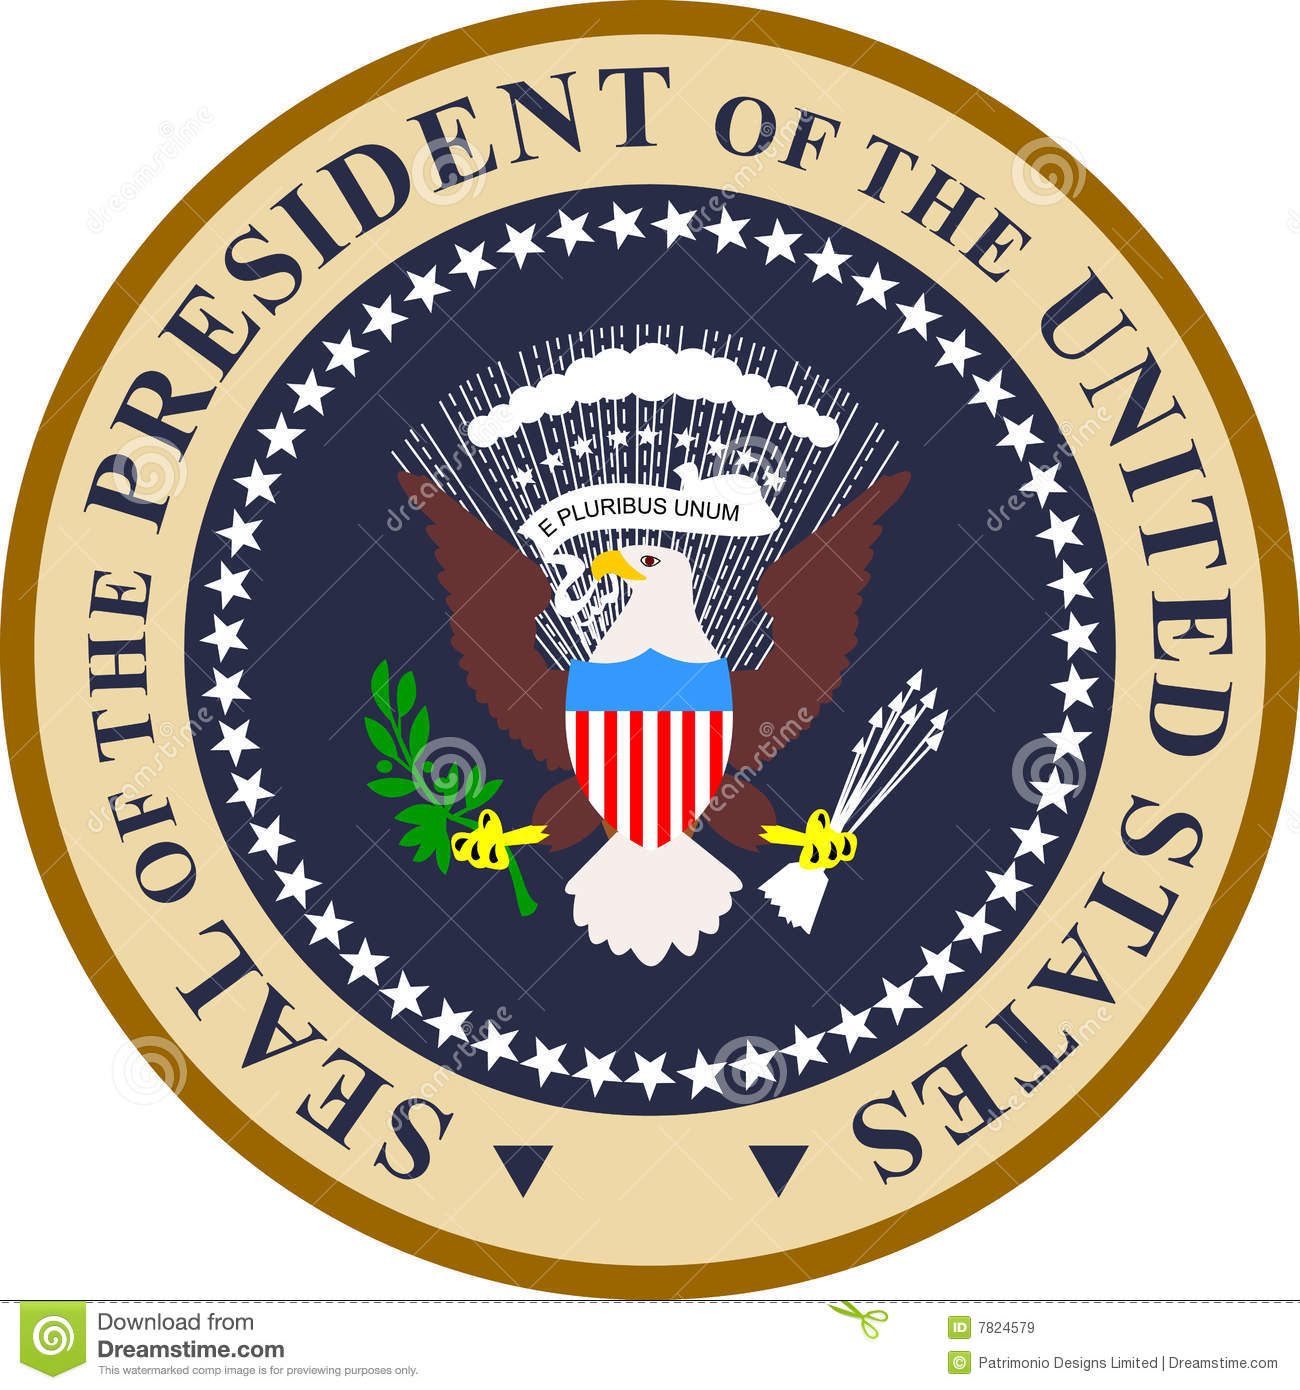 President of the united states clipart - Clipground